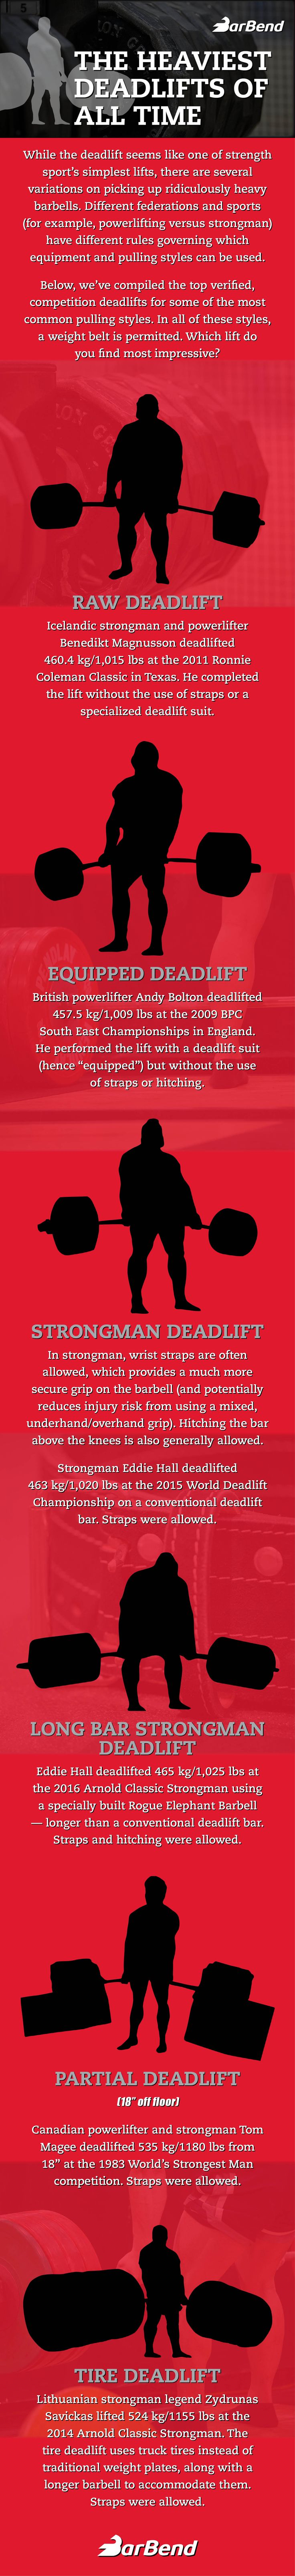 The heaviest deadlifts of all time.